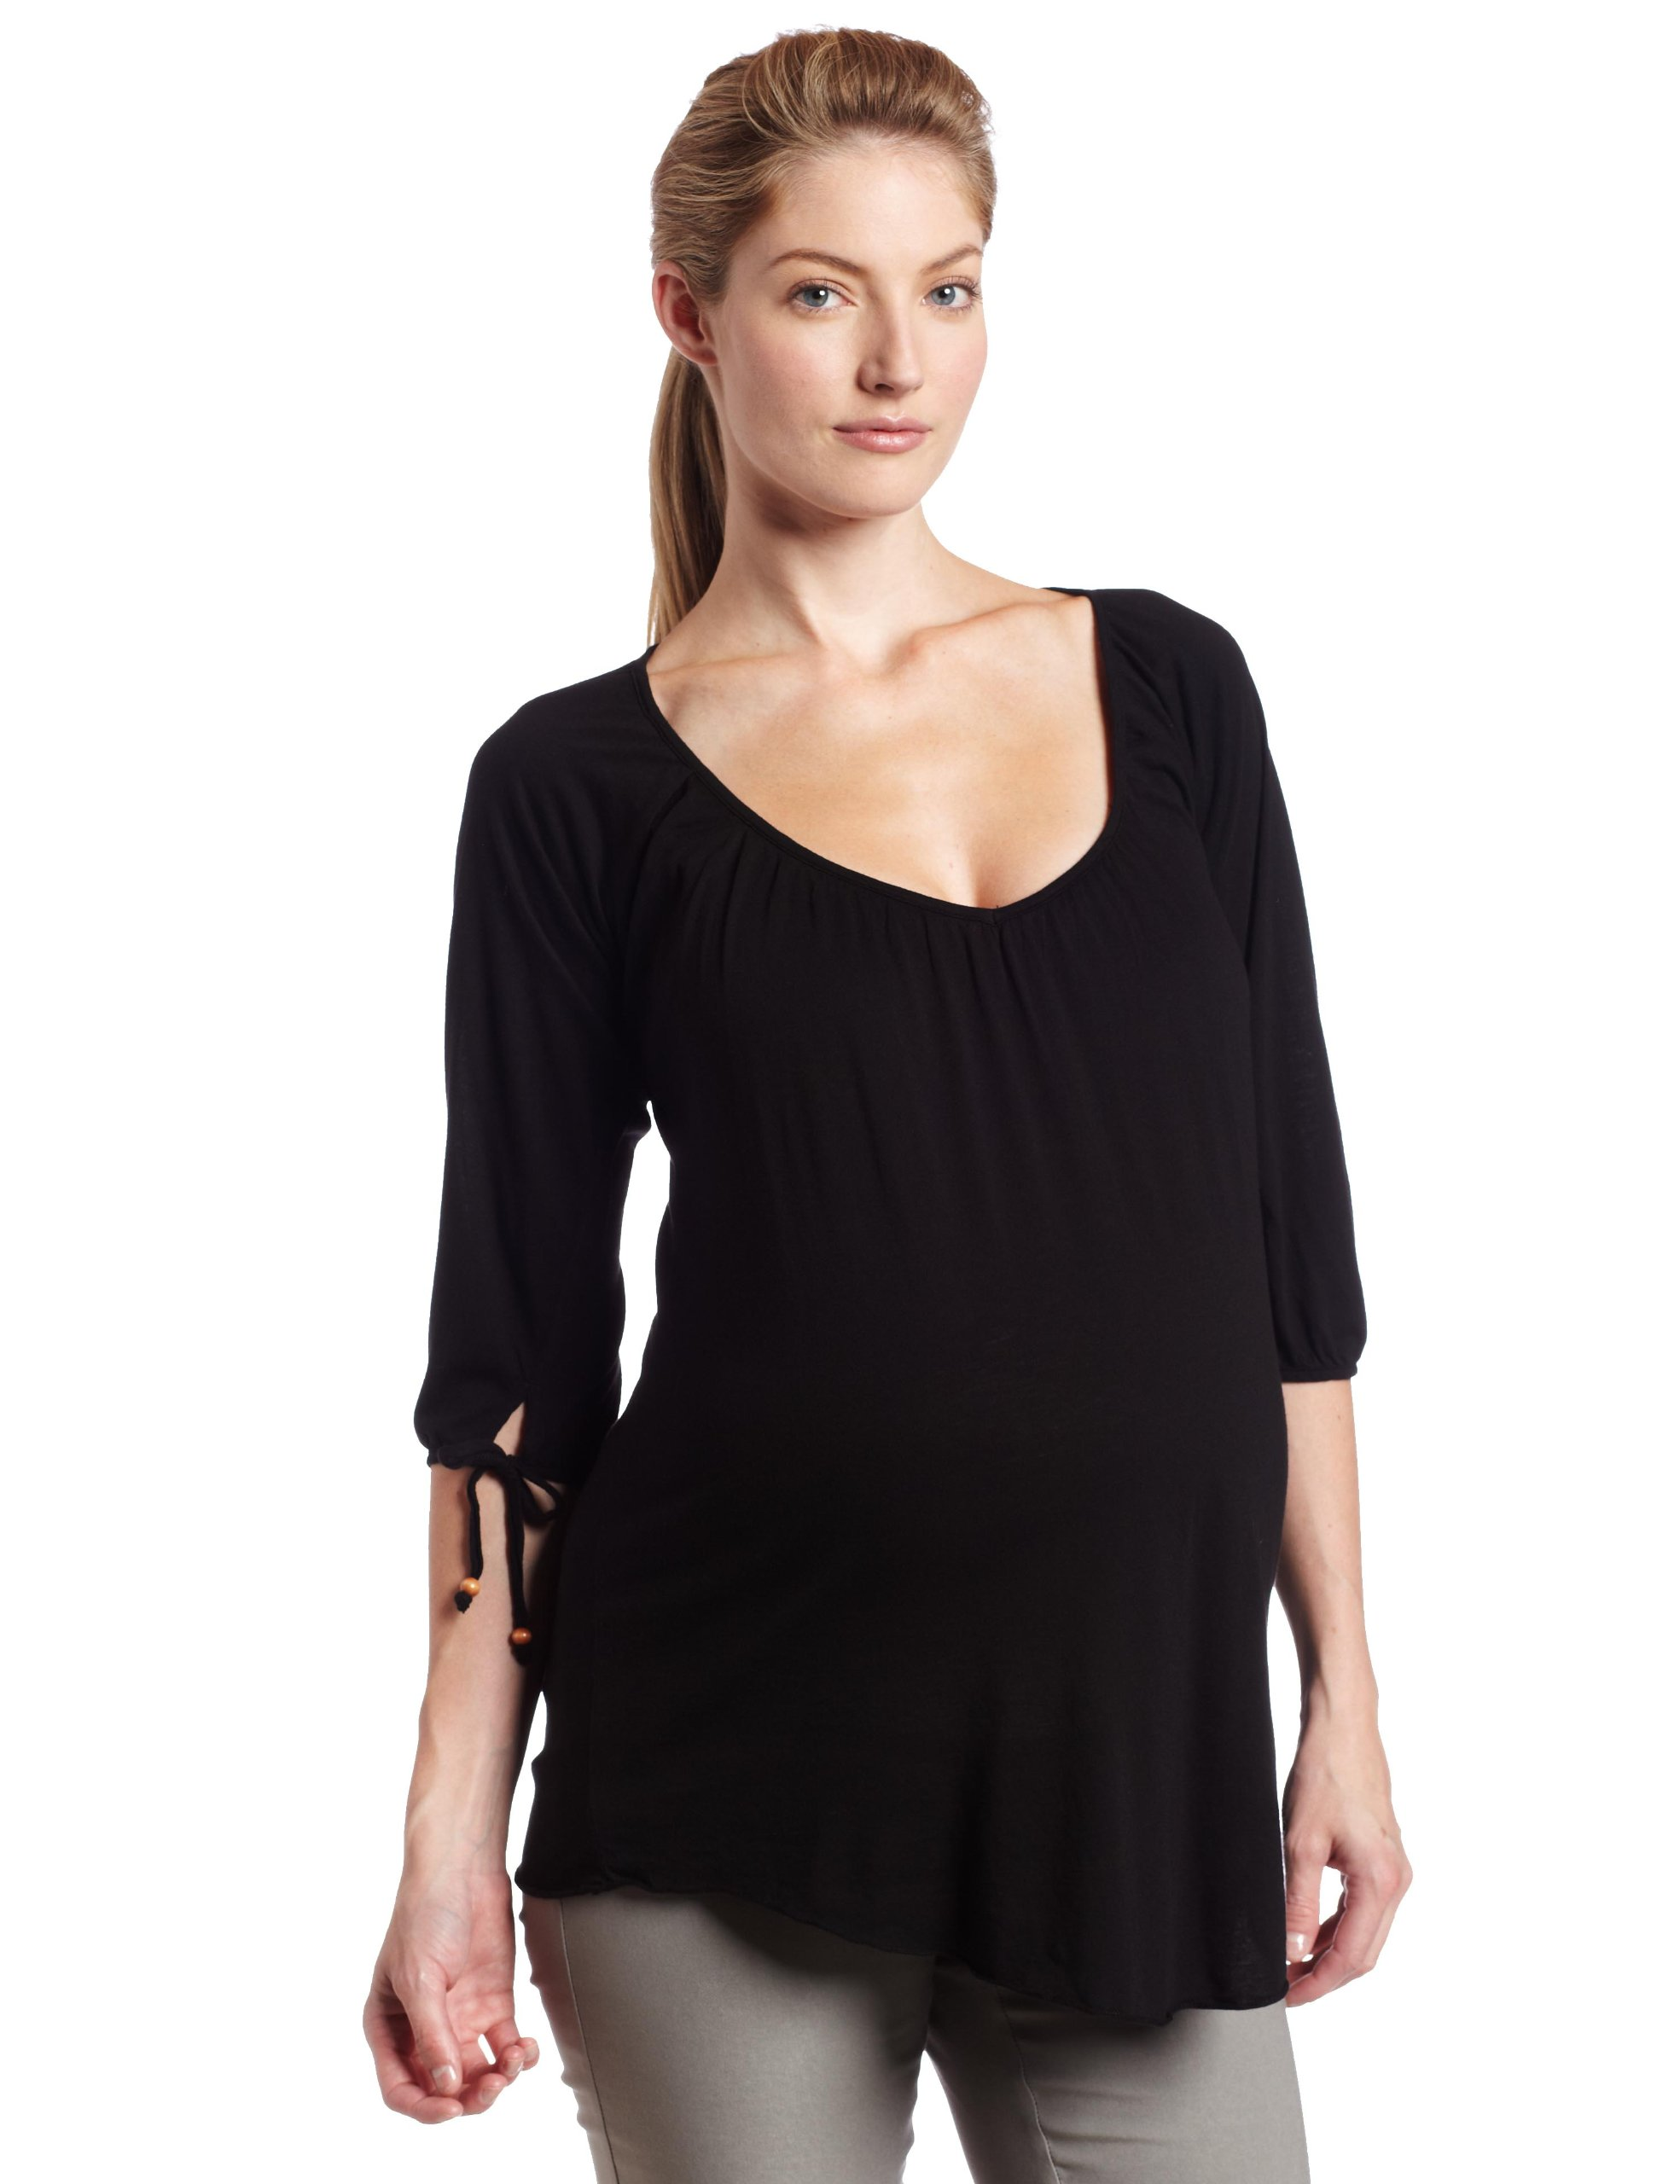 9seed  Women's Maternity Star Top,Night,p/s